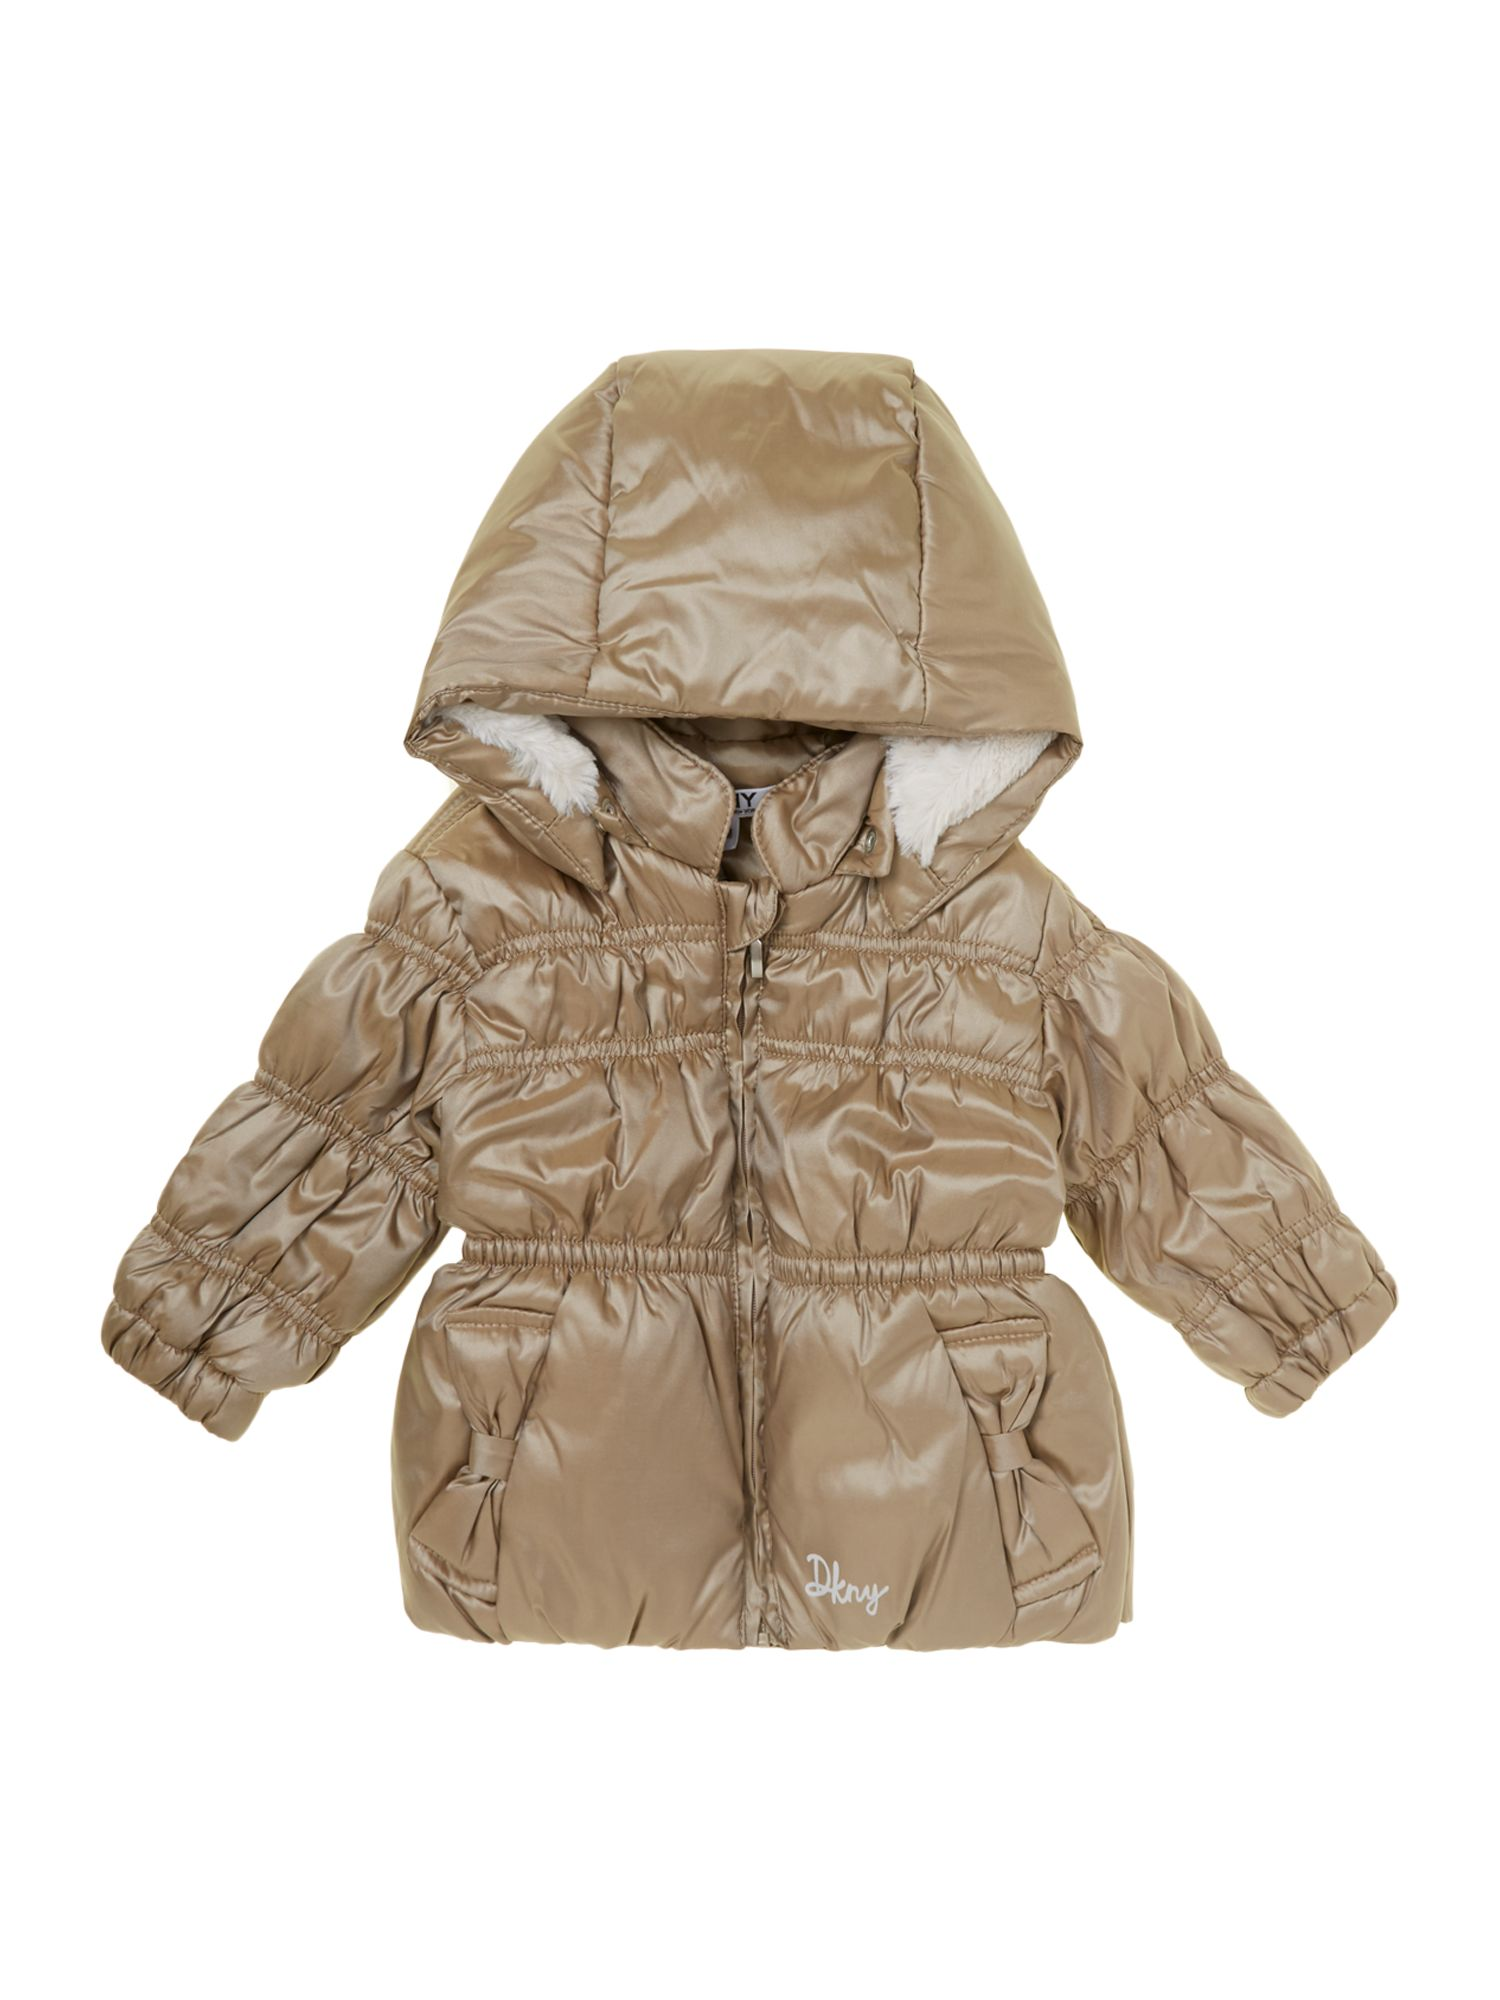 Toddler girl`s long sleeve jacket